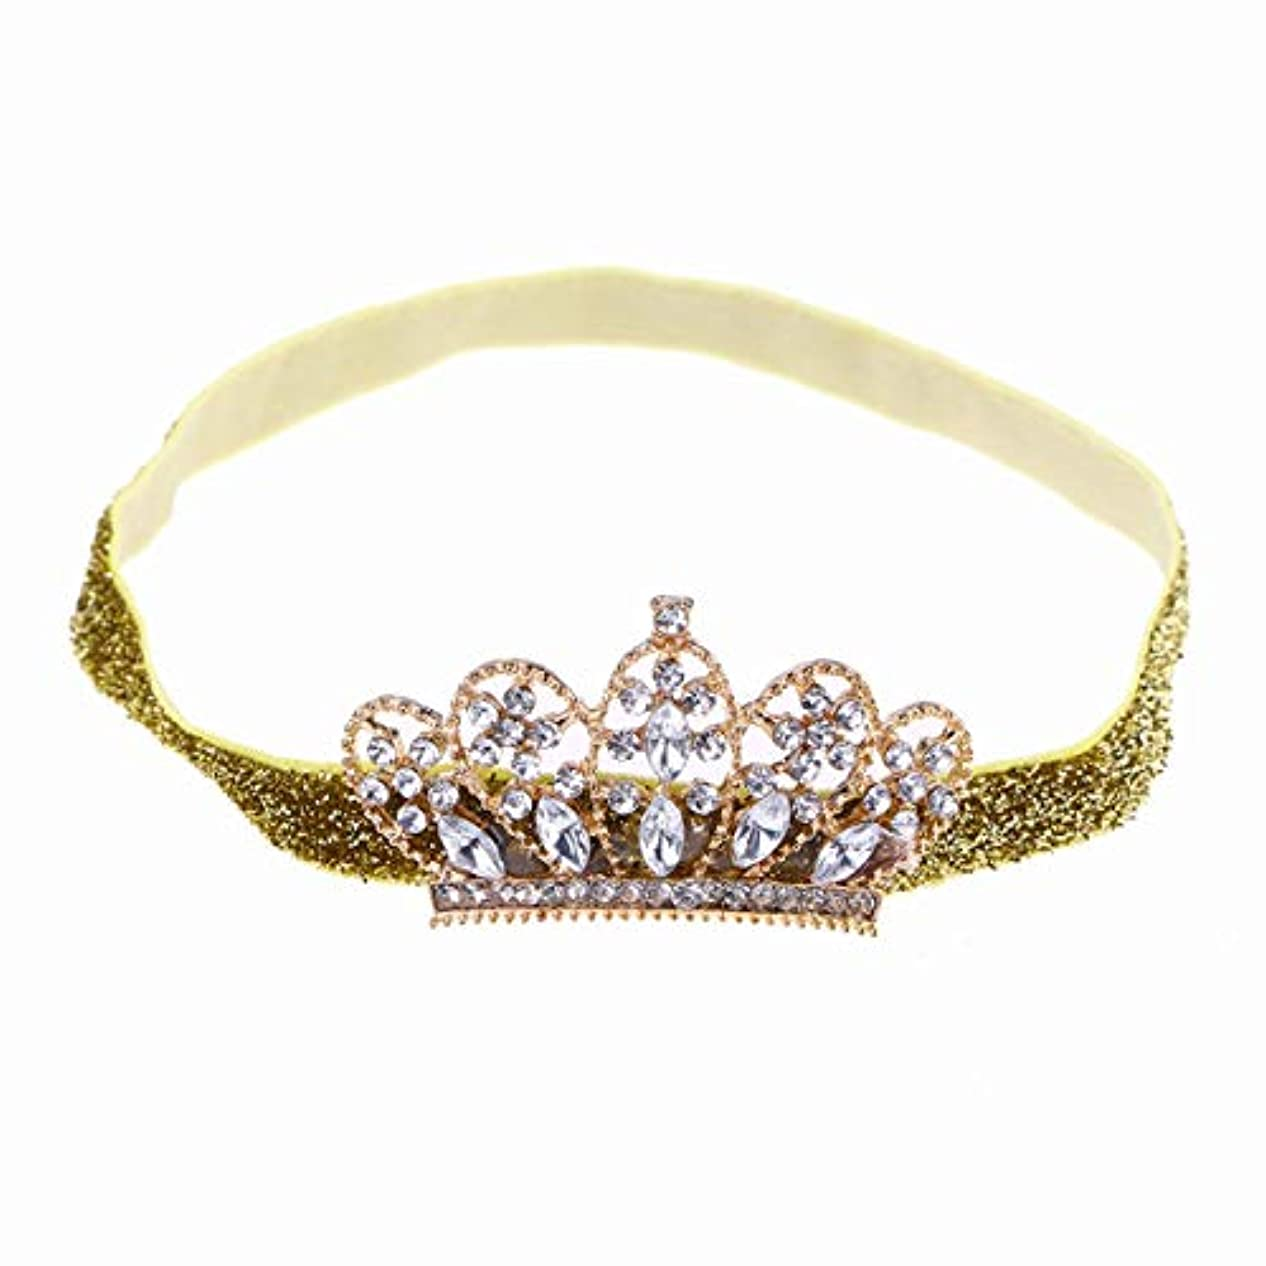 鉄道駅しかしながら安全Beaupretty Baby Girls Rhinestone Crown Headband Elastic Tiara Hairband Headdress